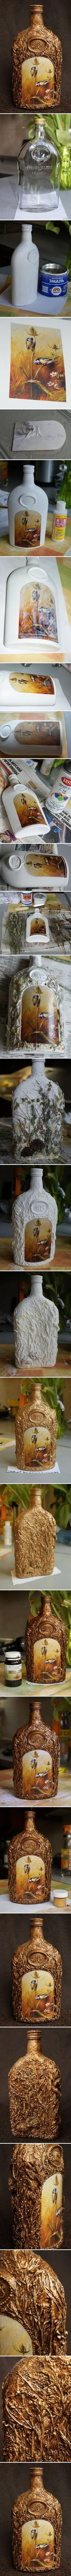 DIY Decorative Glass Bottle